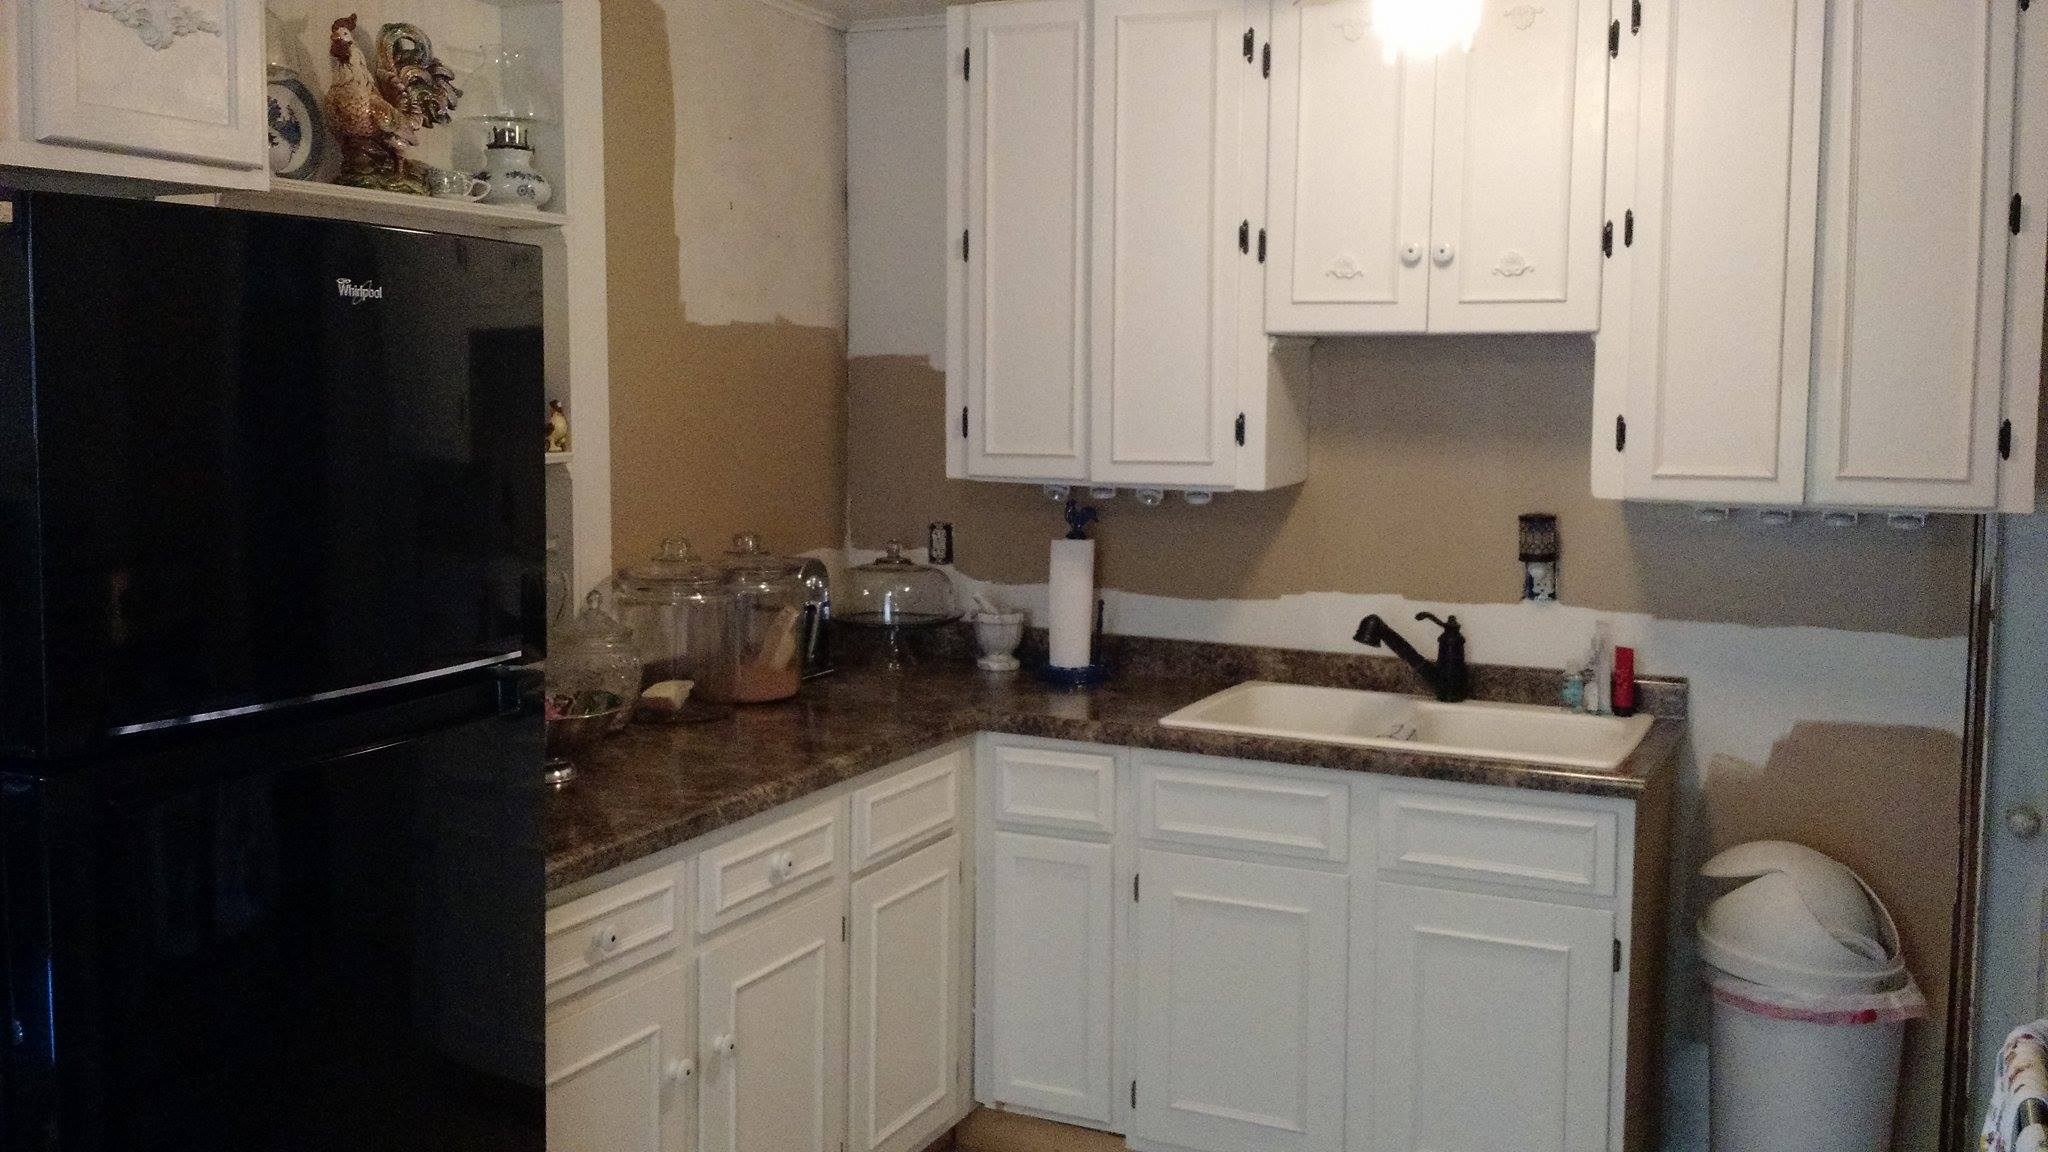 New paint color in kitchen - 11-16-2017